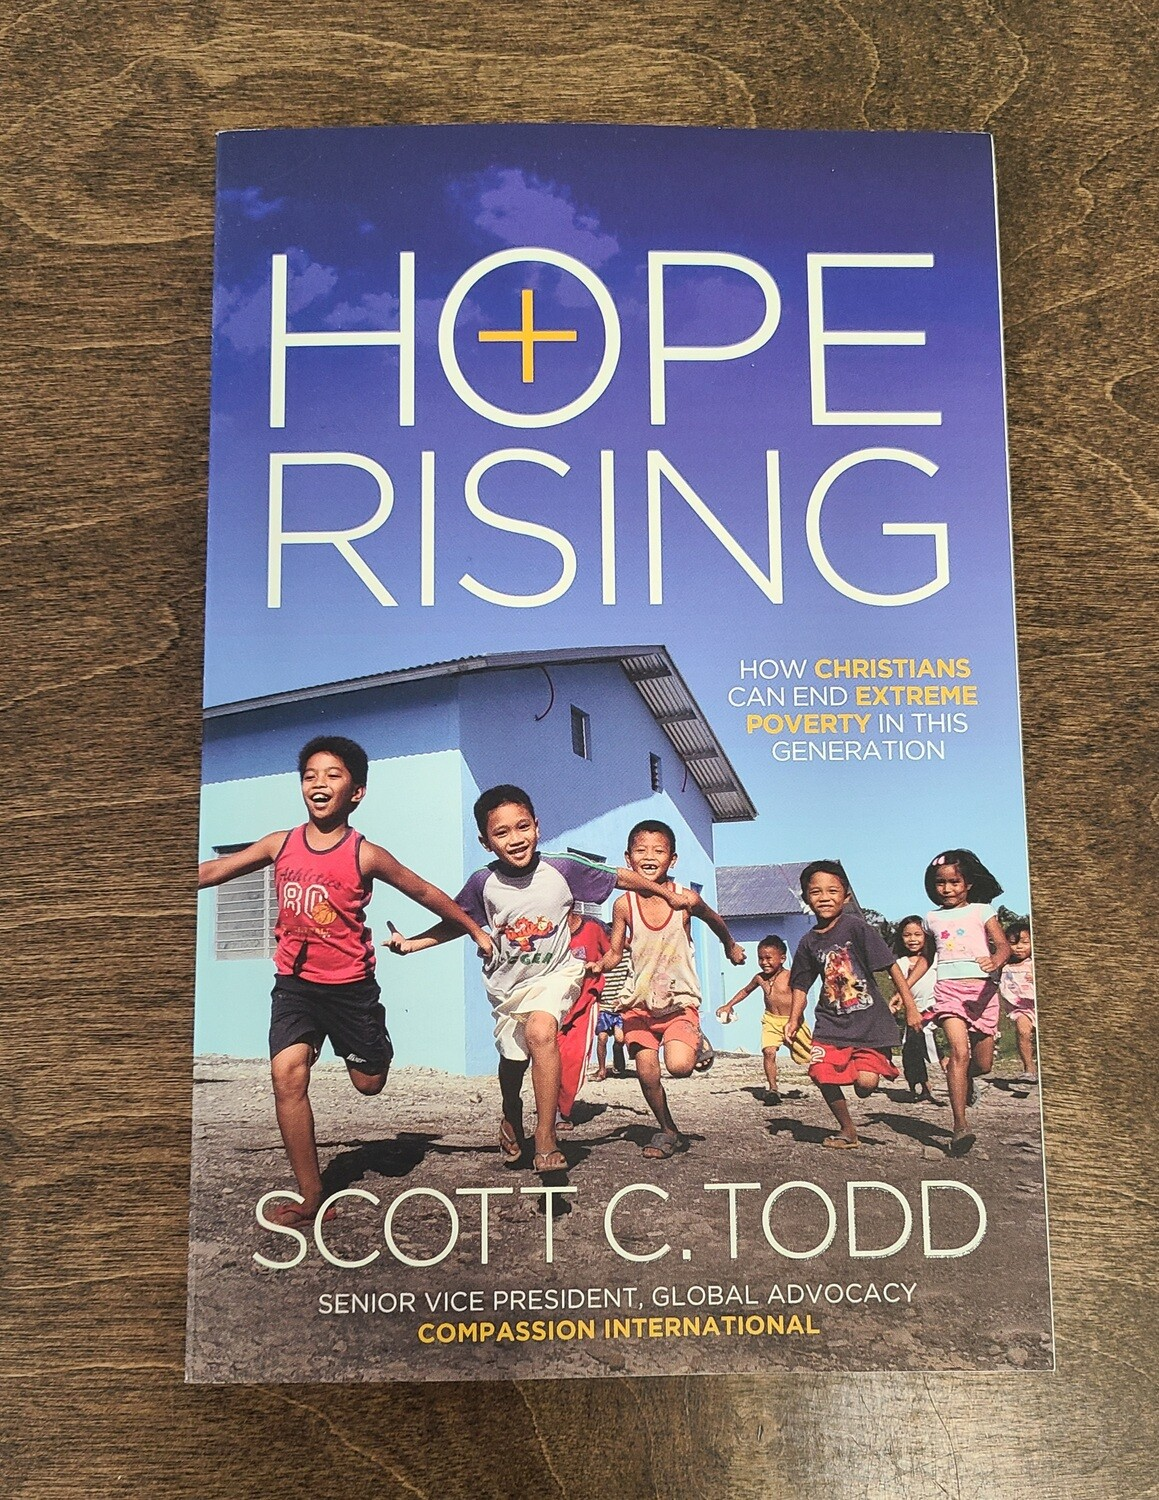 Hope Rising: How Christians can End Extreme Poverty in this Generation by Scott C. Todd